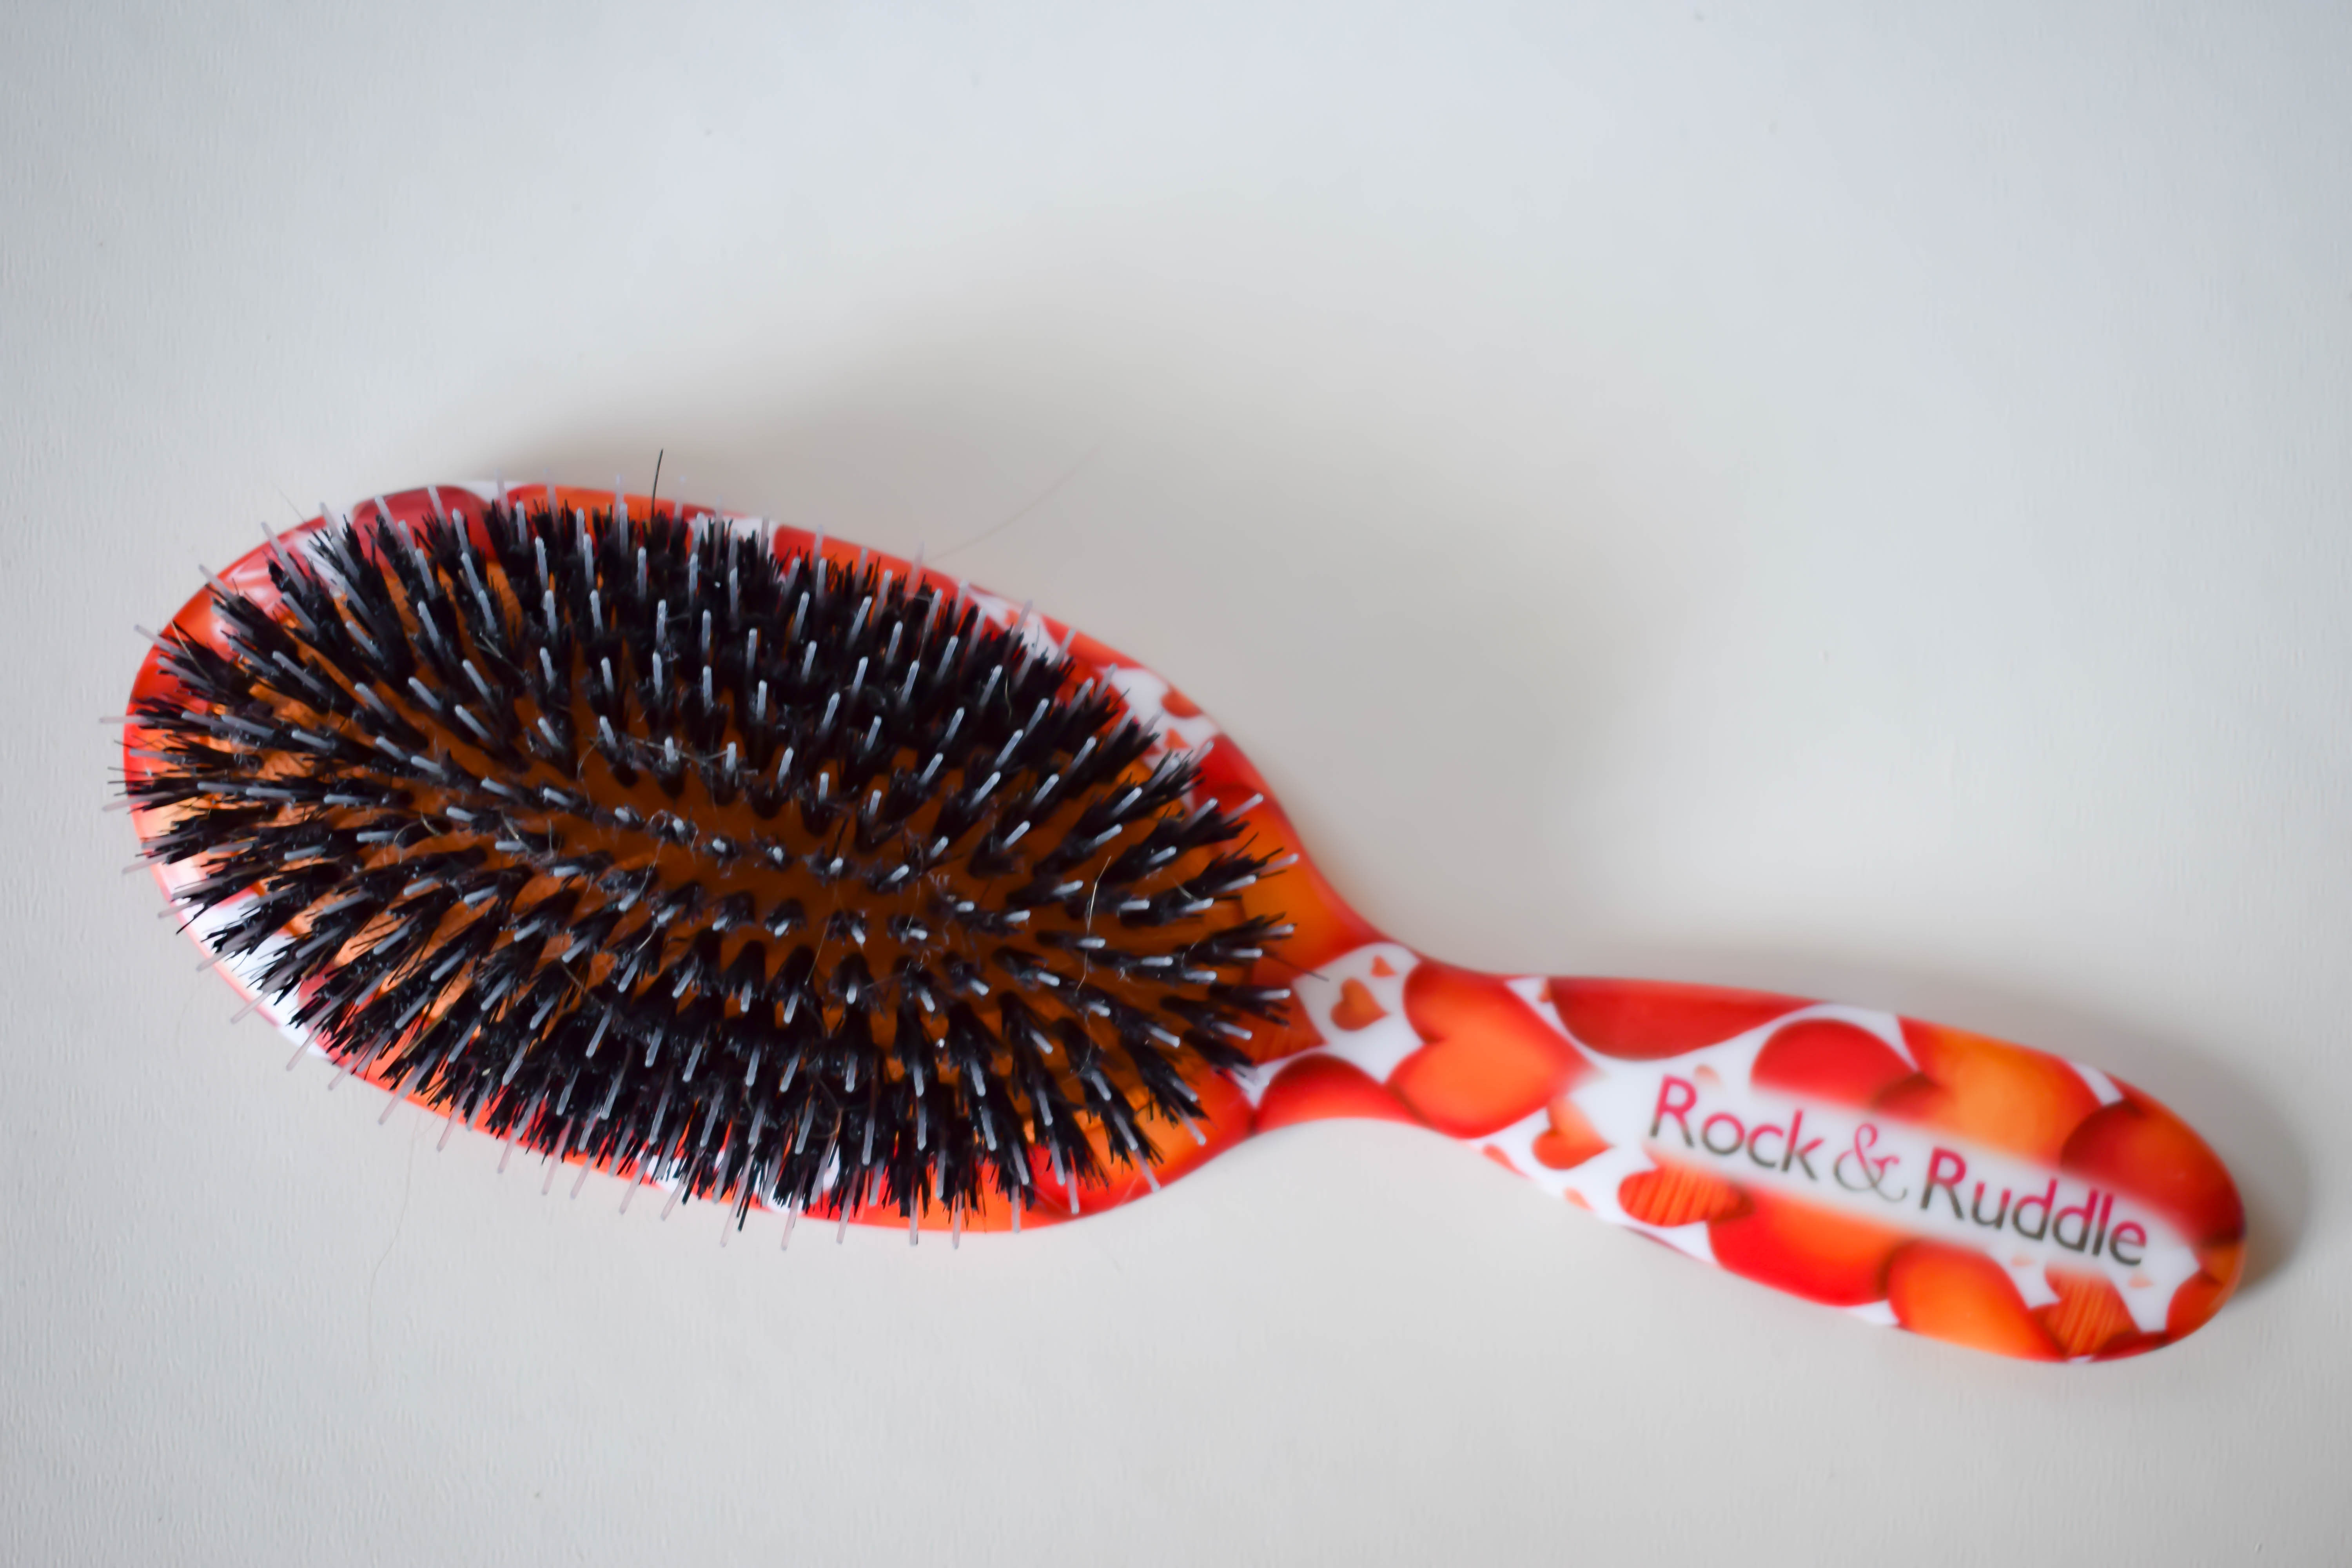 Rock-and-Ruddle-Hairbrush